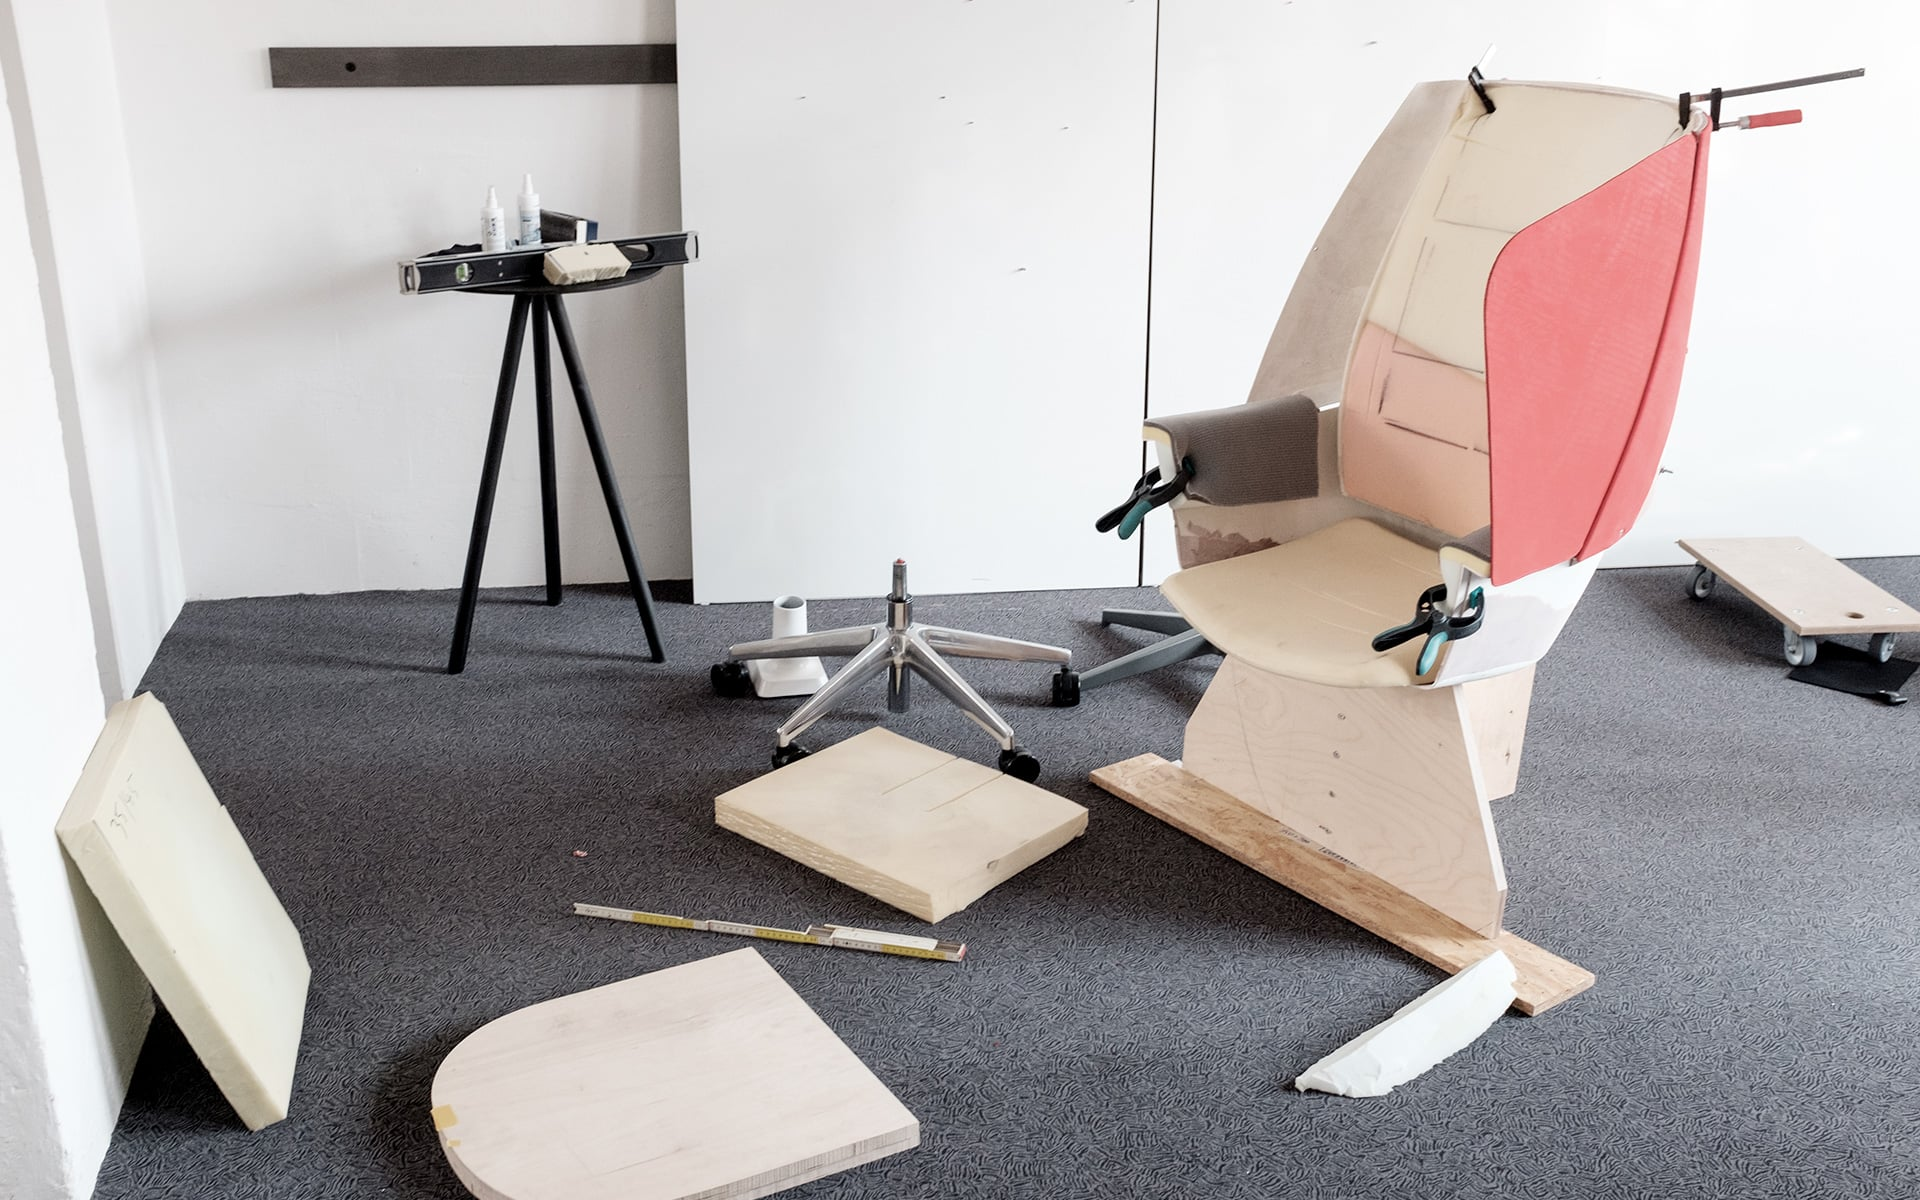 A wooden prototype of the ITO Design TeamUP office chair is being assembled